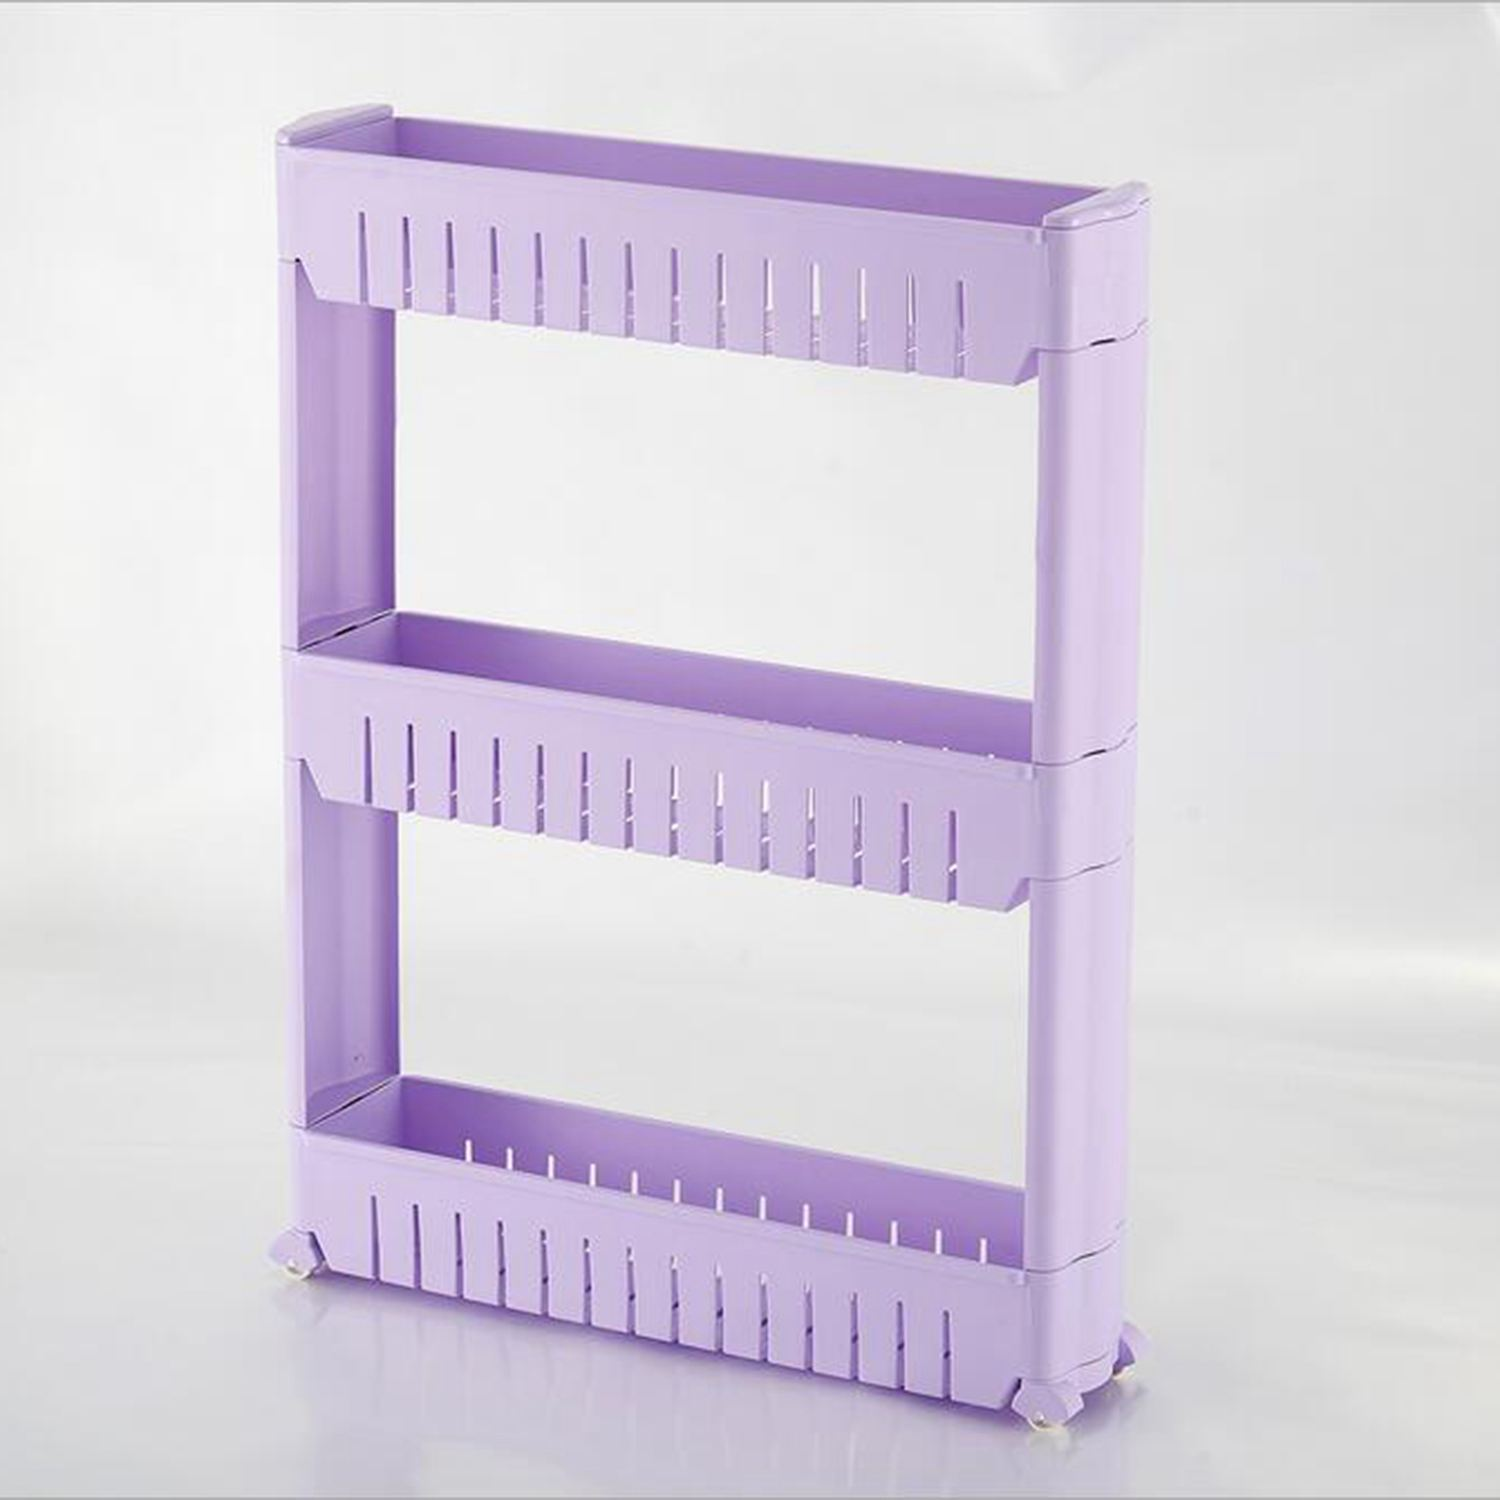 Gap Storage Shelf For Kitchen Storage Skating Movable Plastic Bathroom Shelf Save Space 3 layers High Quality